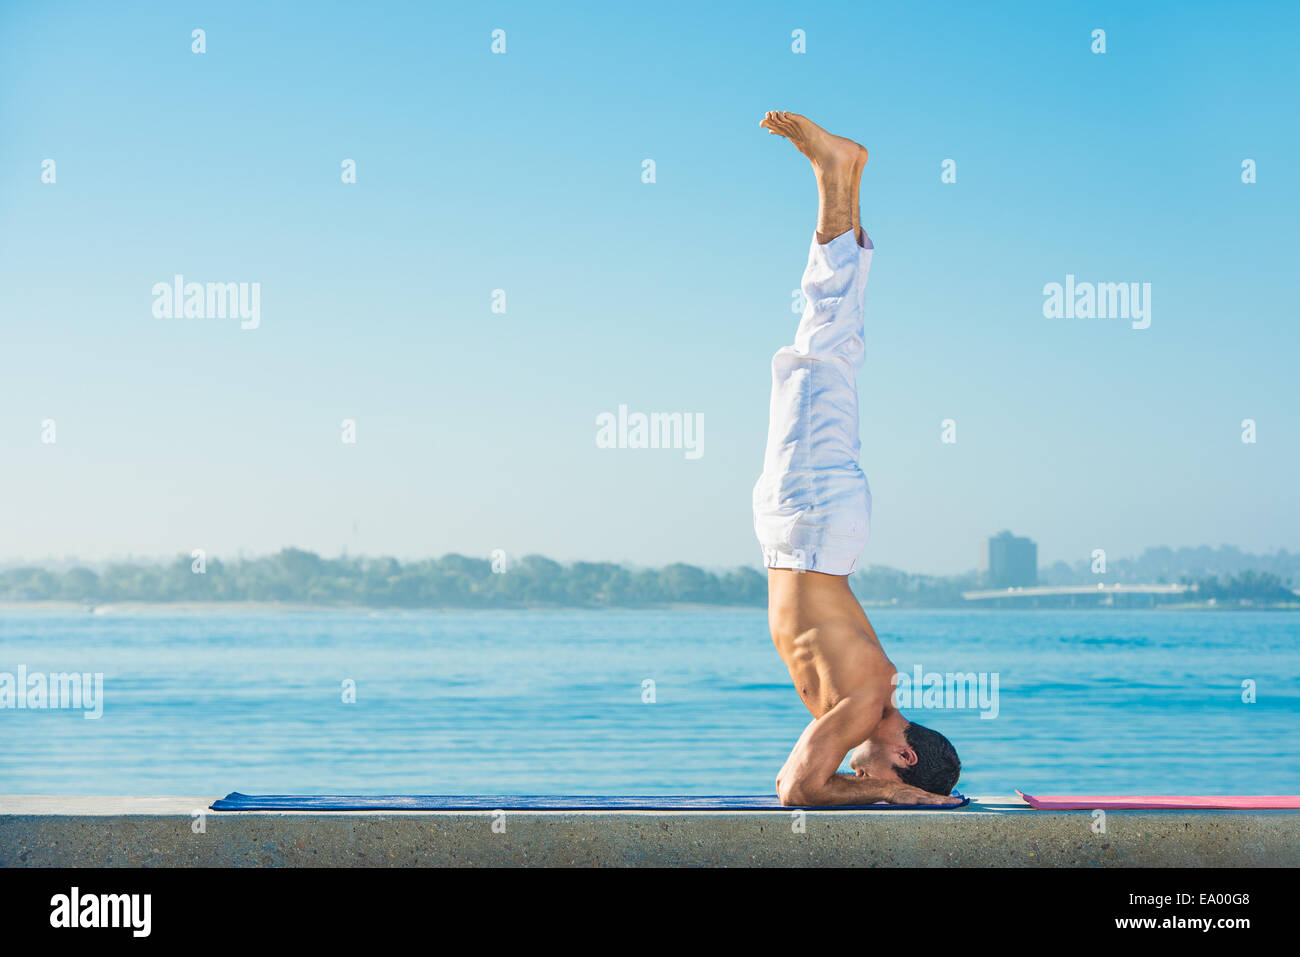 Young man practicing upside down yoga position at Pacific beach, San Diego, California, USA - Stock Image